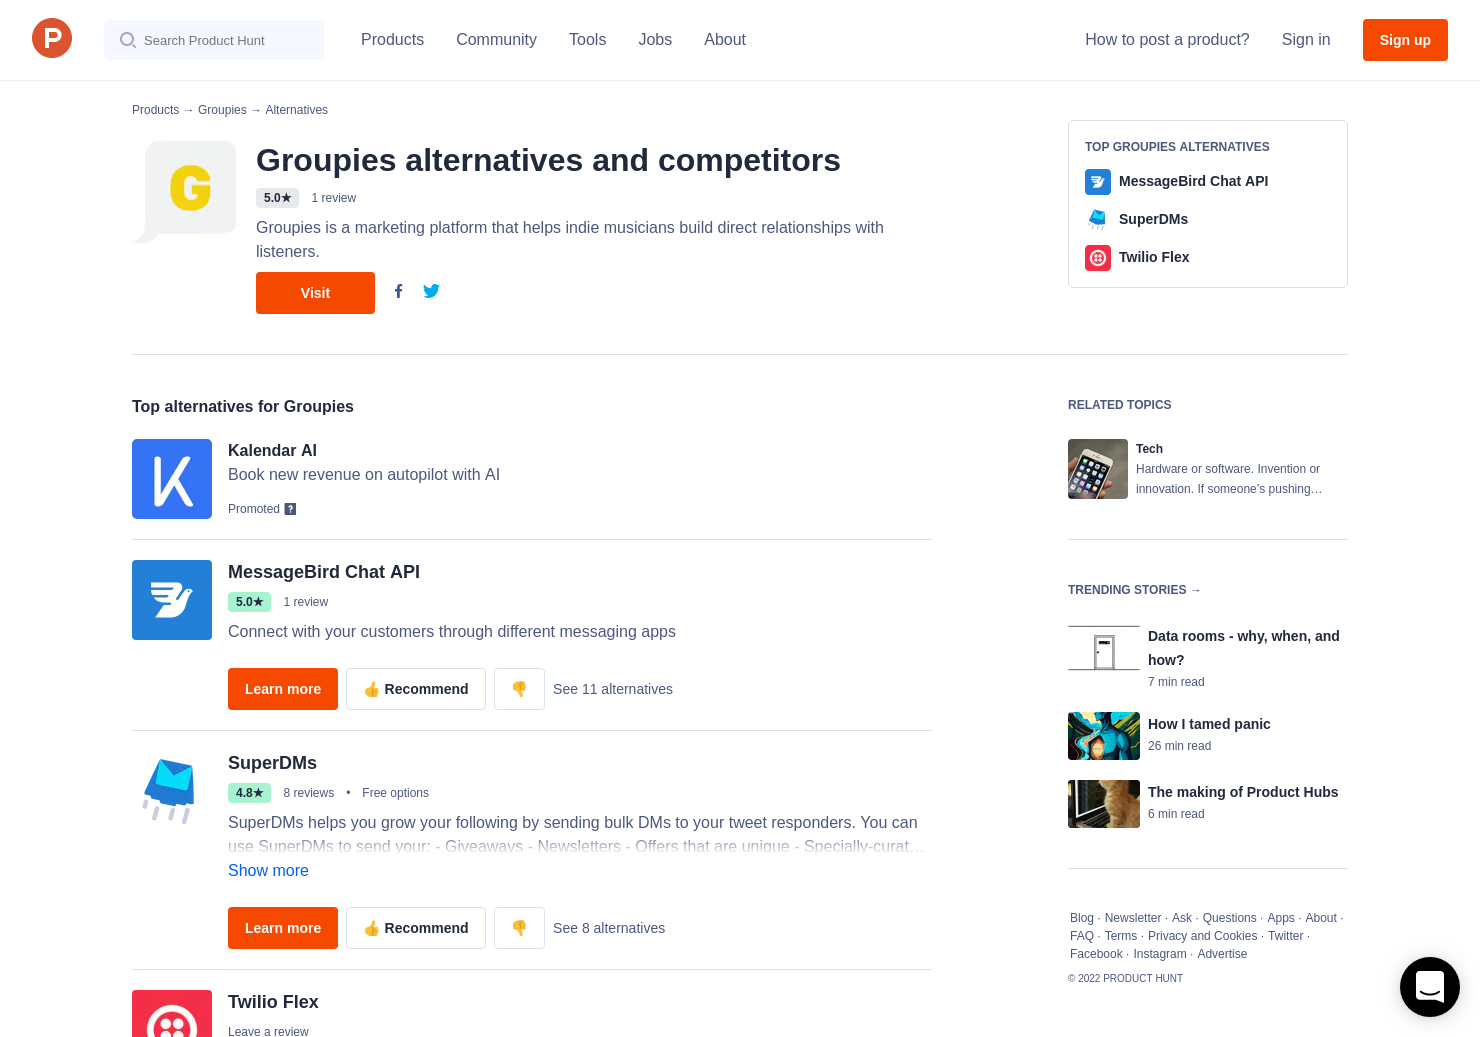 7 Alternatives to Groupies | Product Hunt